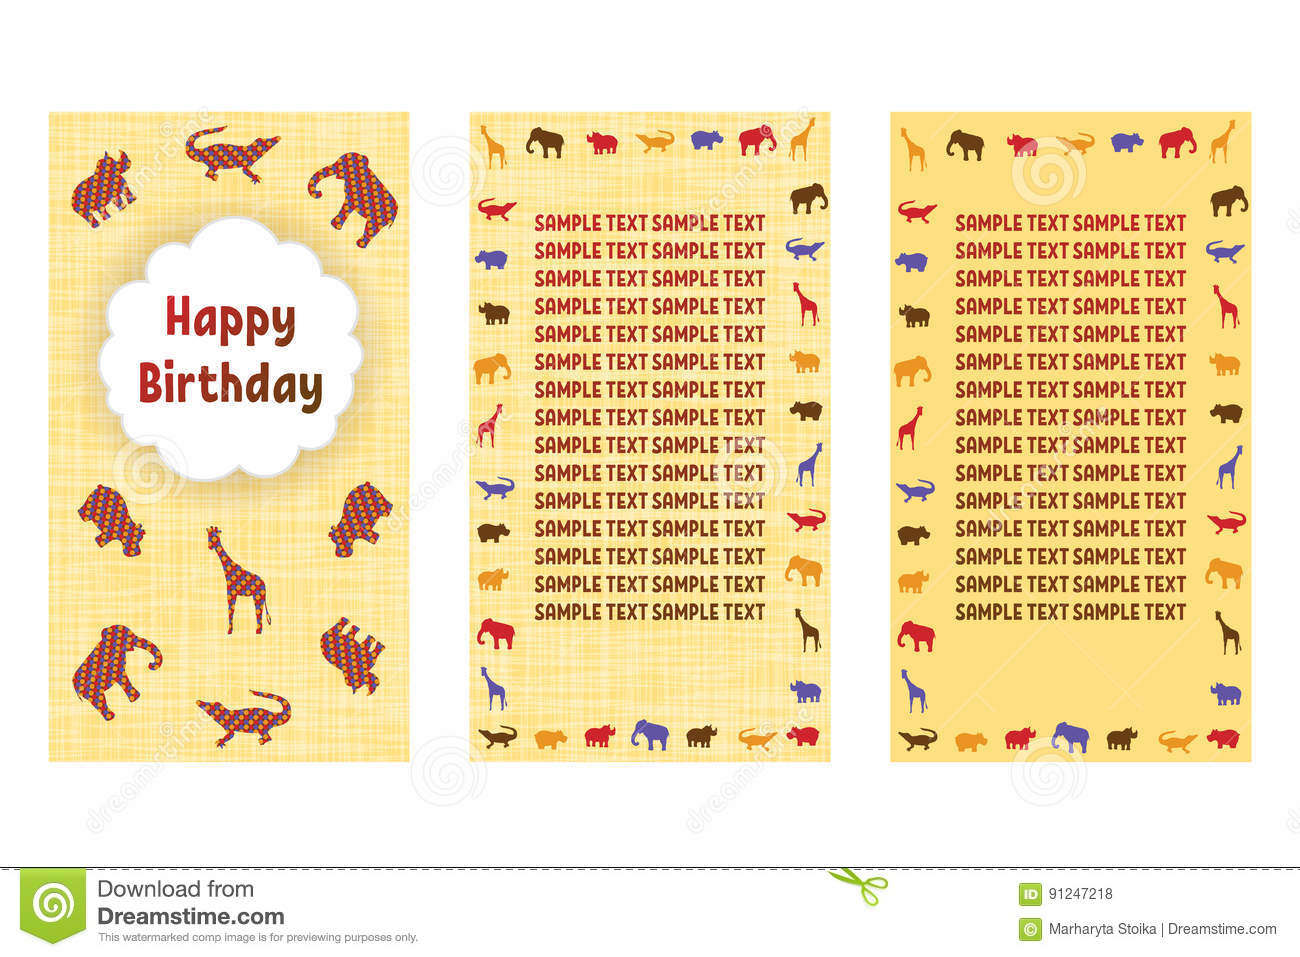 Happy Birthday Greeting Cards Three Different Vector Patterns In